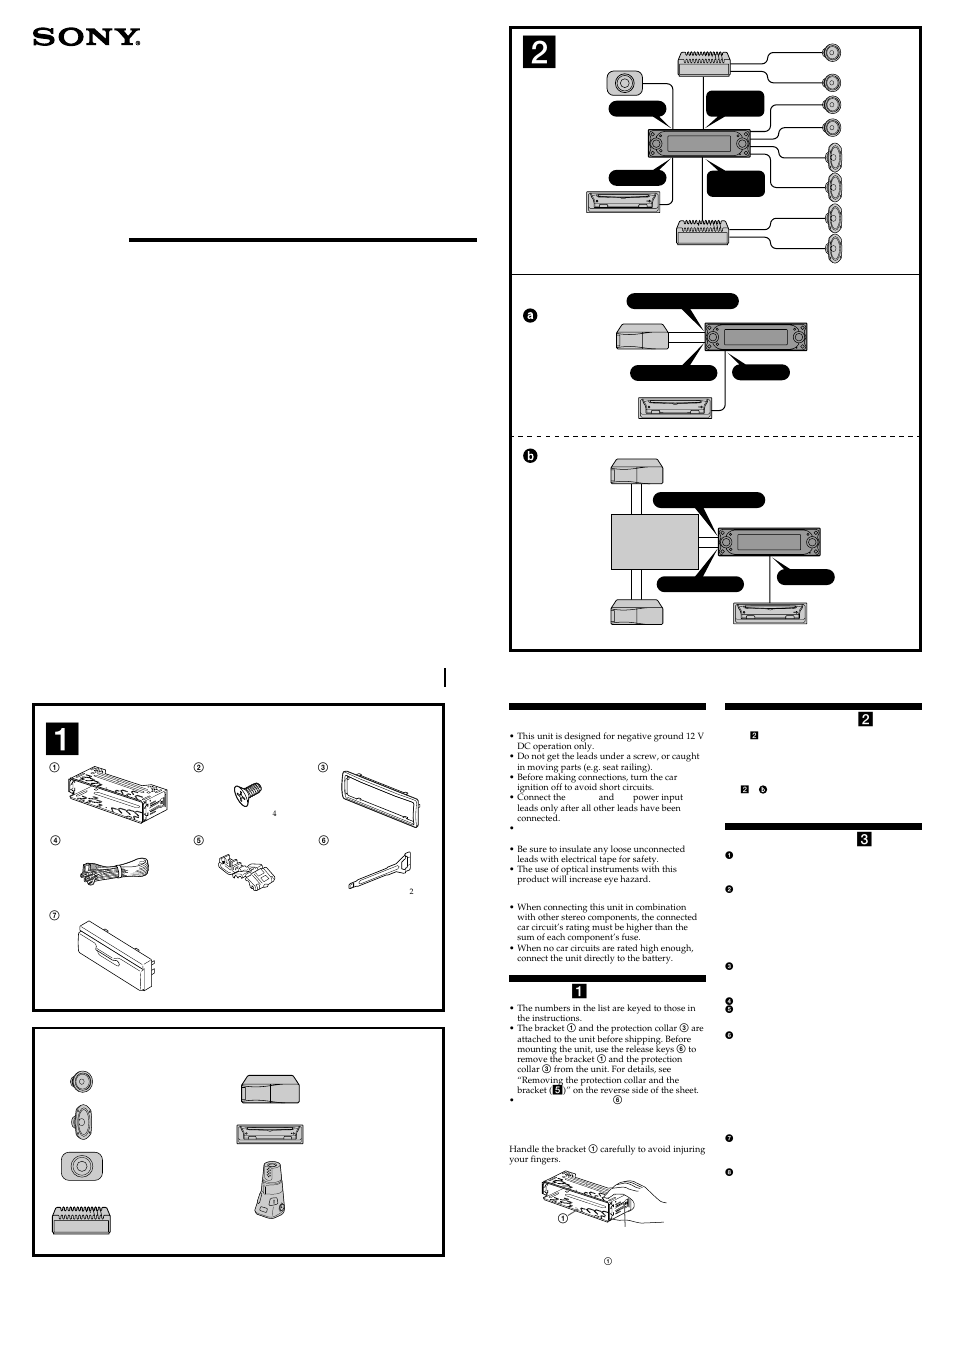 Wiring Diagram For Sony Cdx M9900 Electrical Diagrams M600 Manuel Dutilisation Pages 4